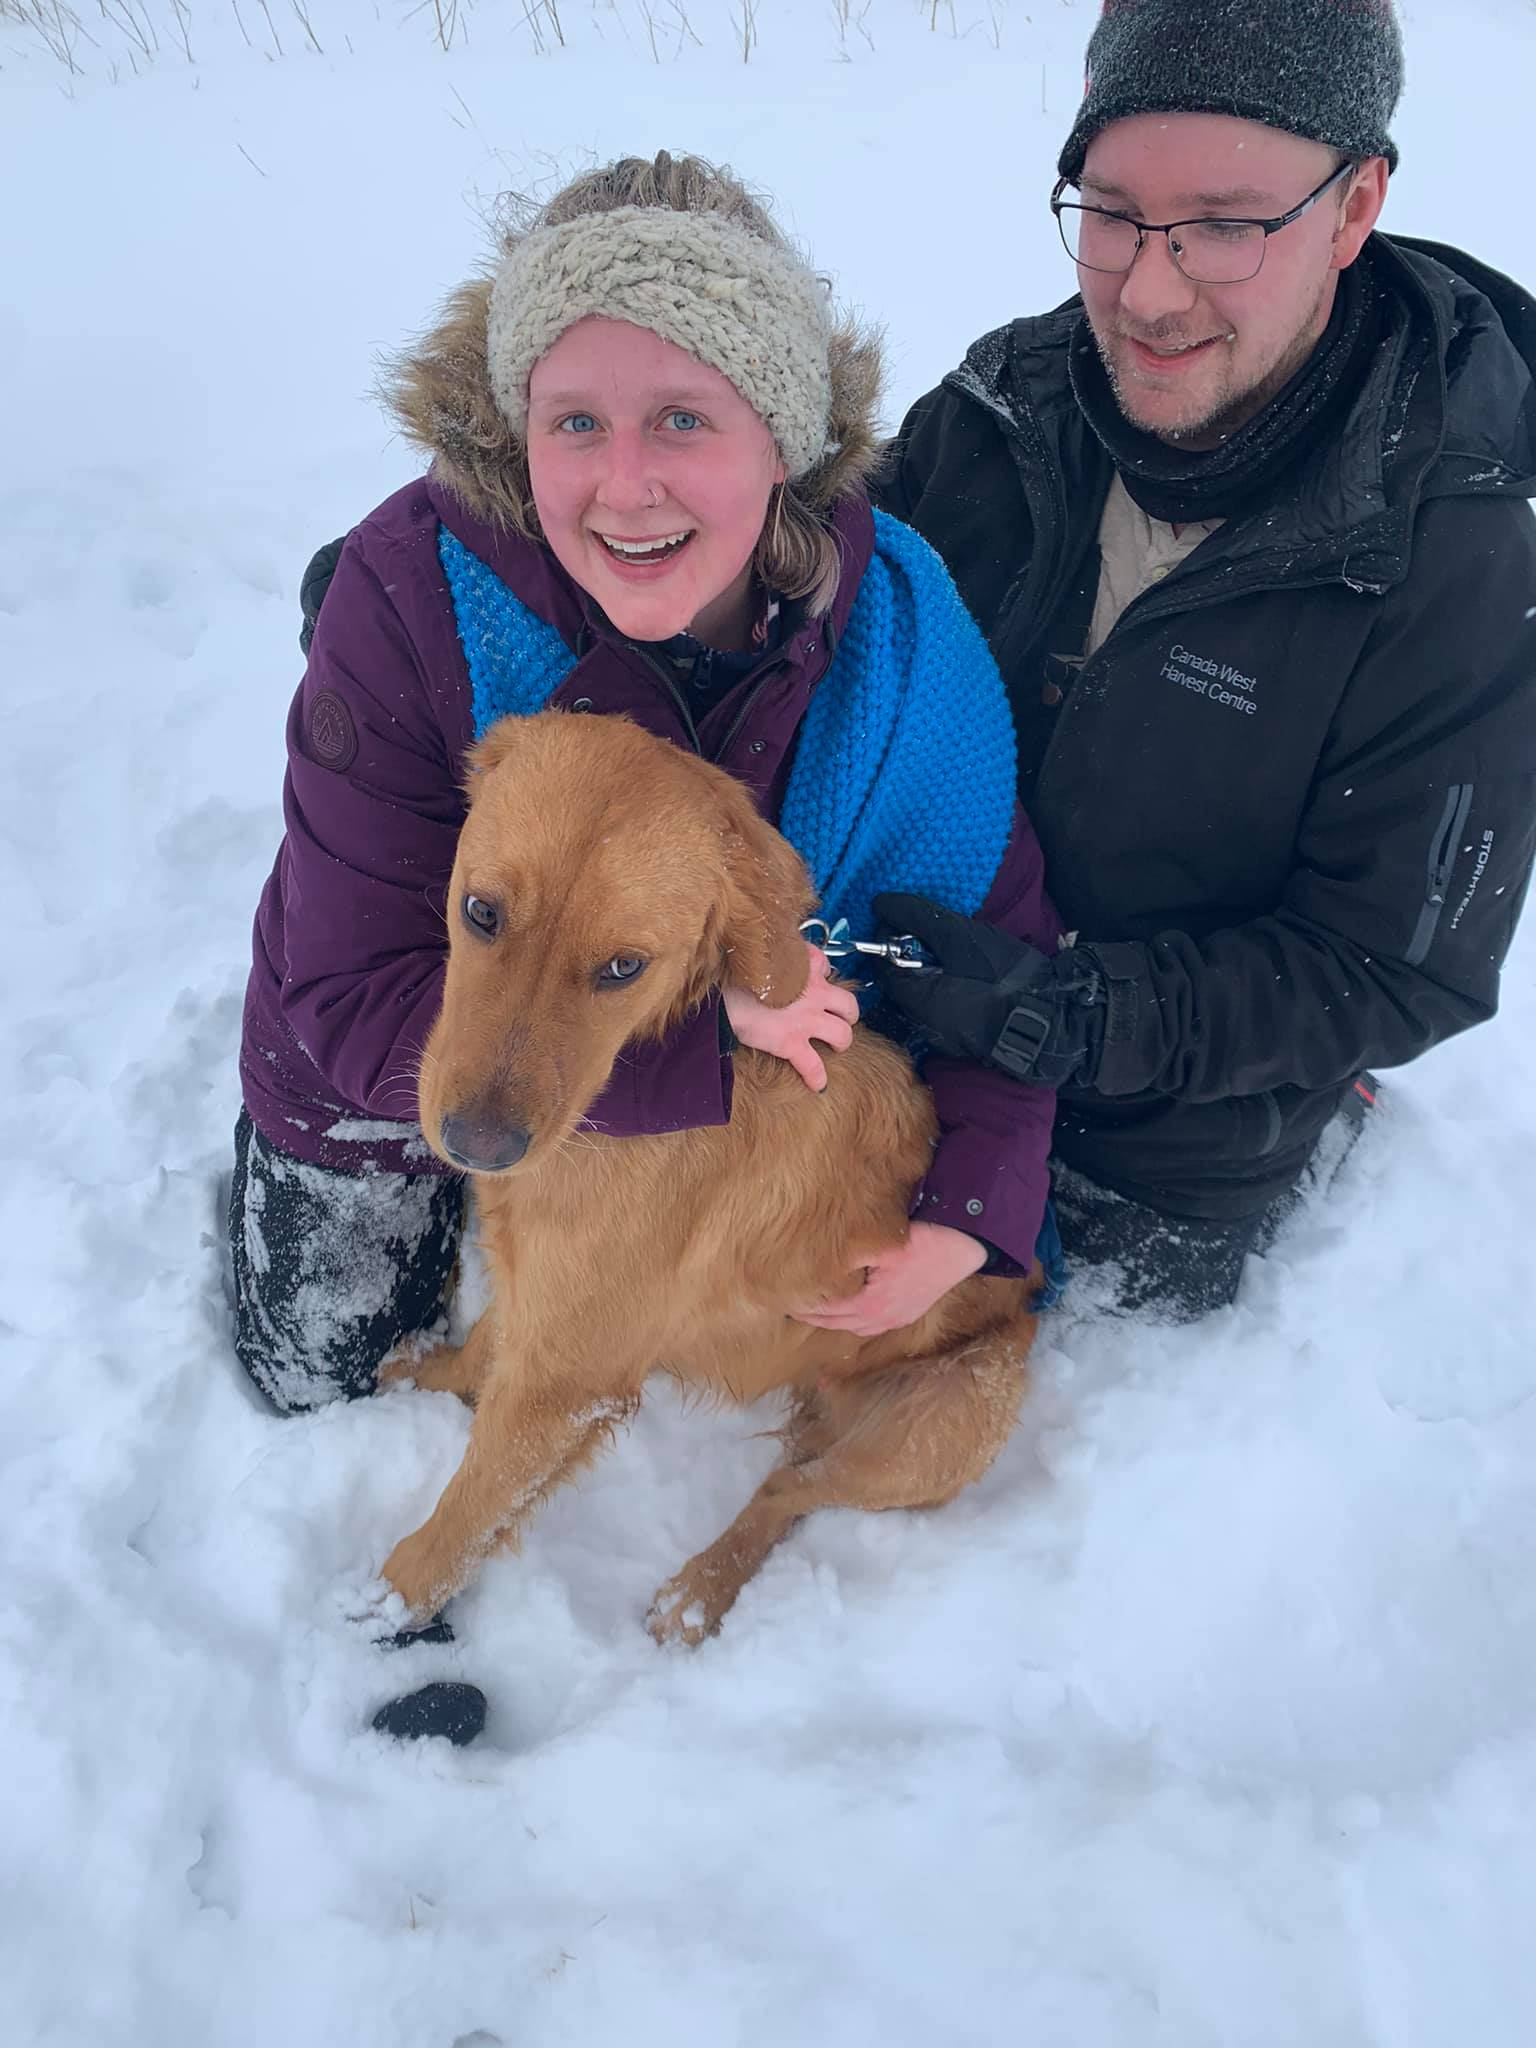 woman, man and dog in the snow